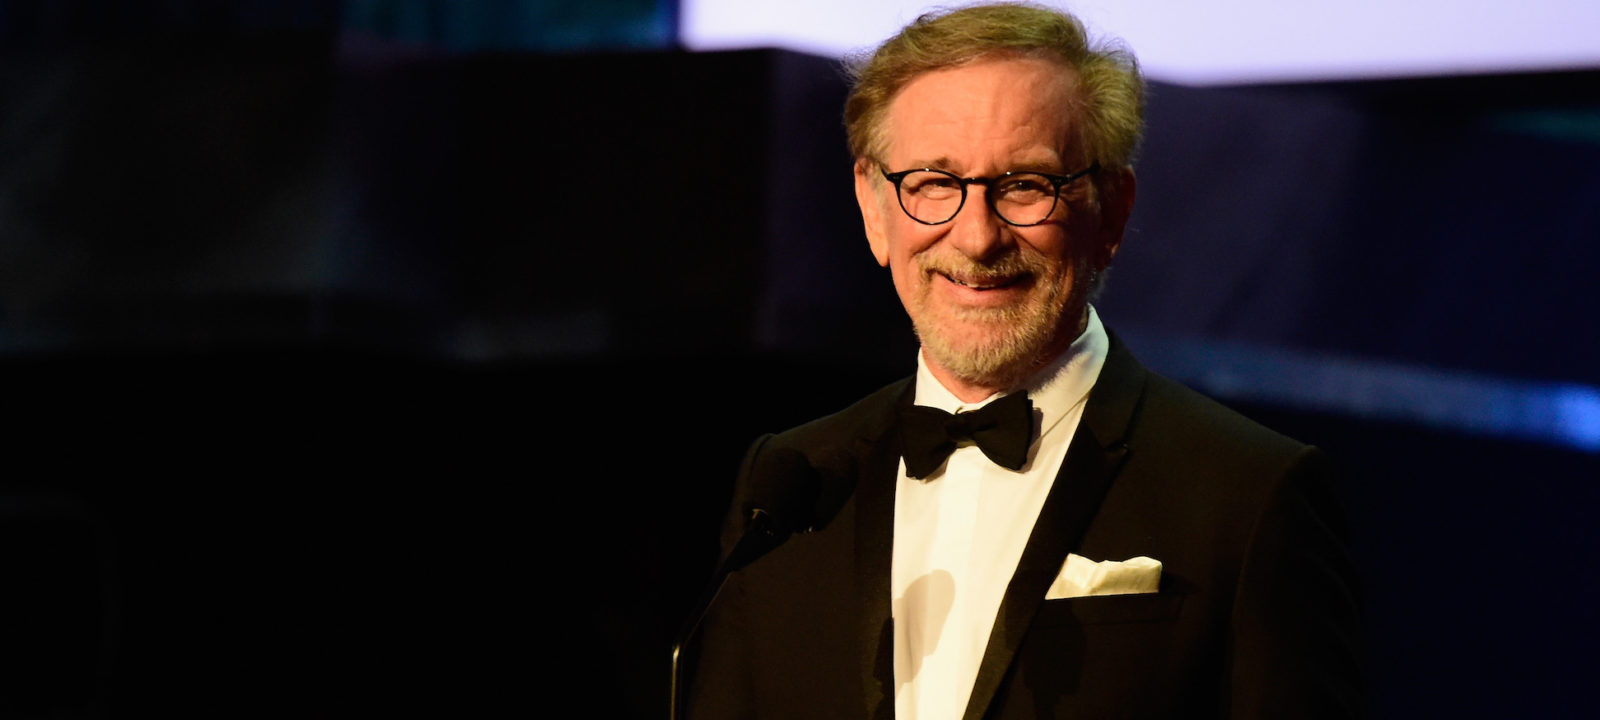 Director Stephen Spielberg onstage during American Film Institute's 44th Life Achievement Award Gala Tribute show to John Williams at Dolby Theatre on June 9, 2016 in Hollywood, California.